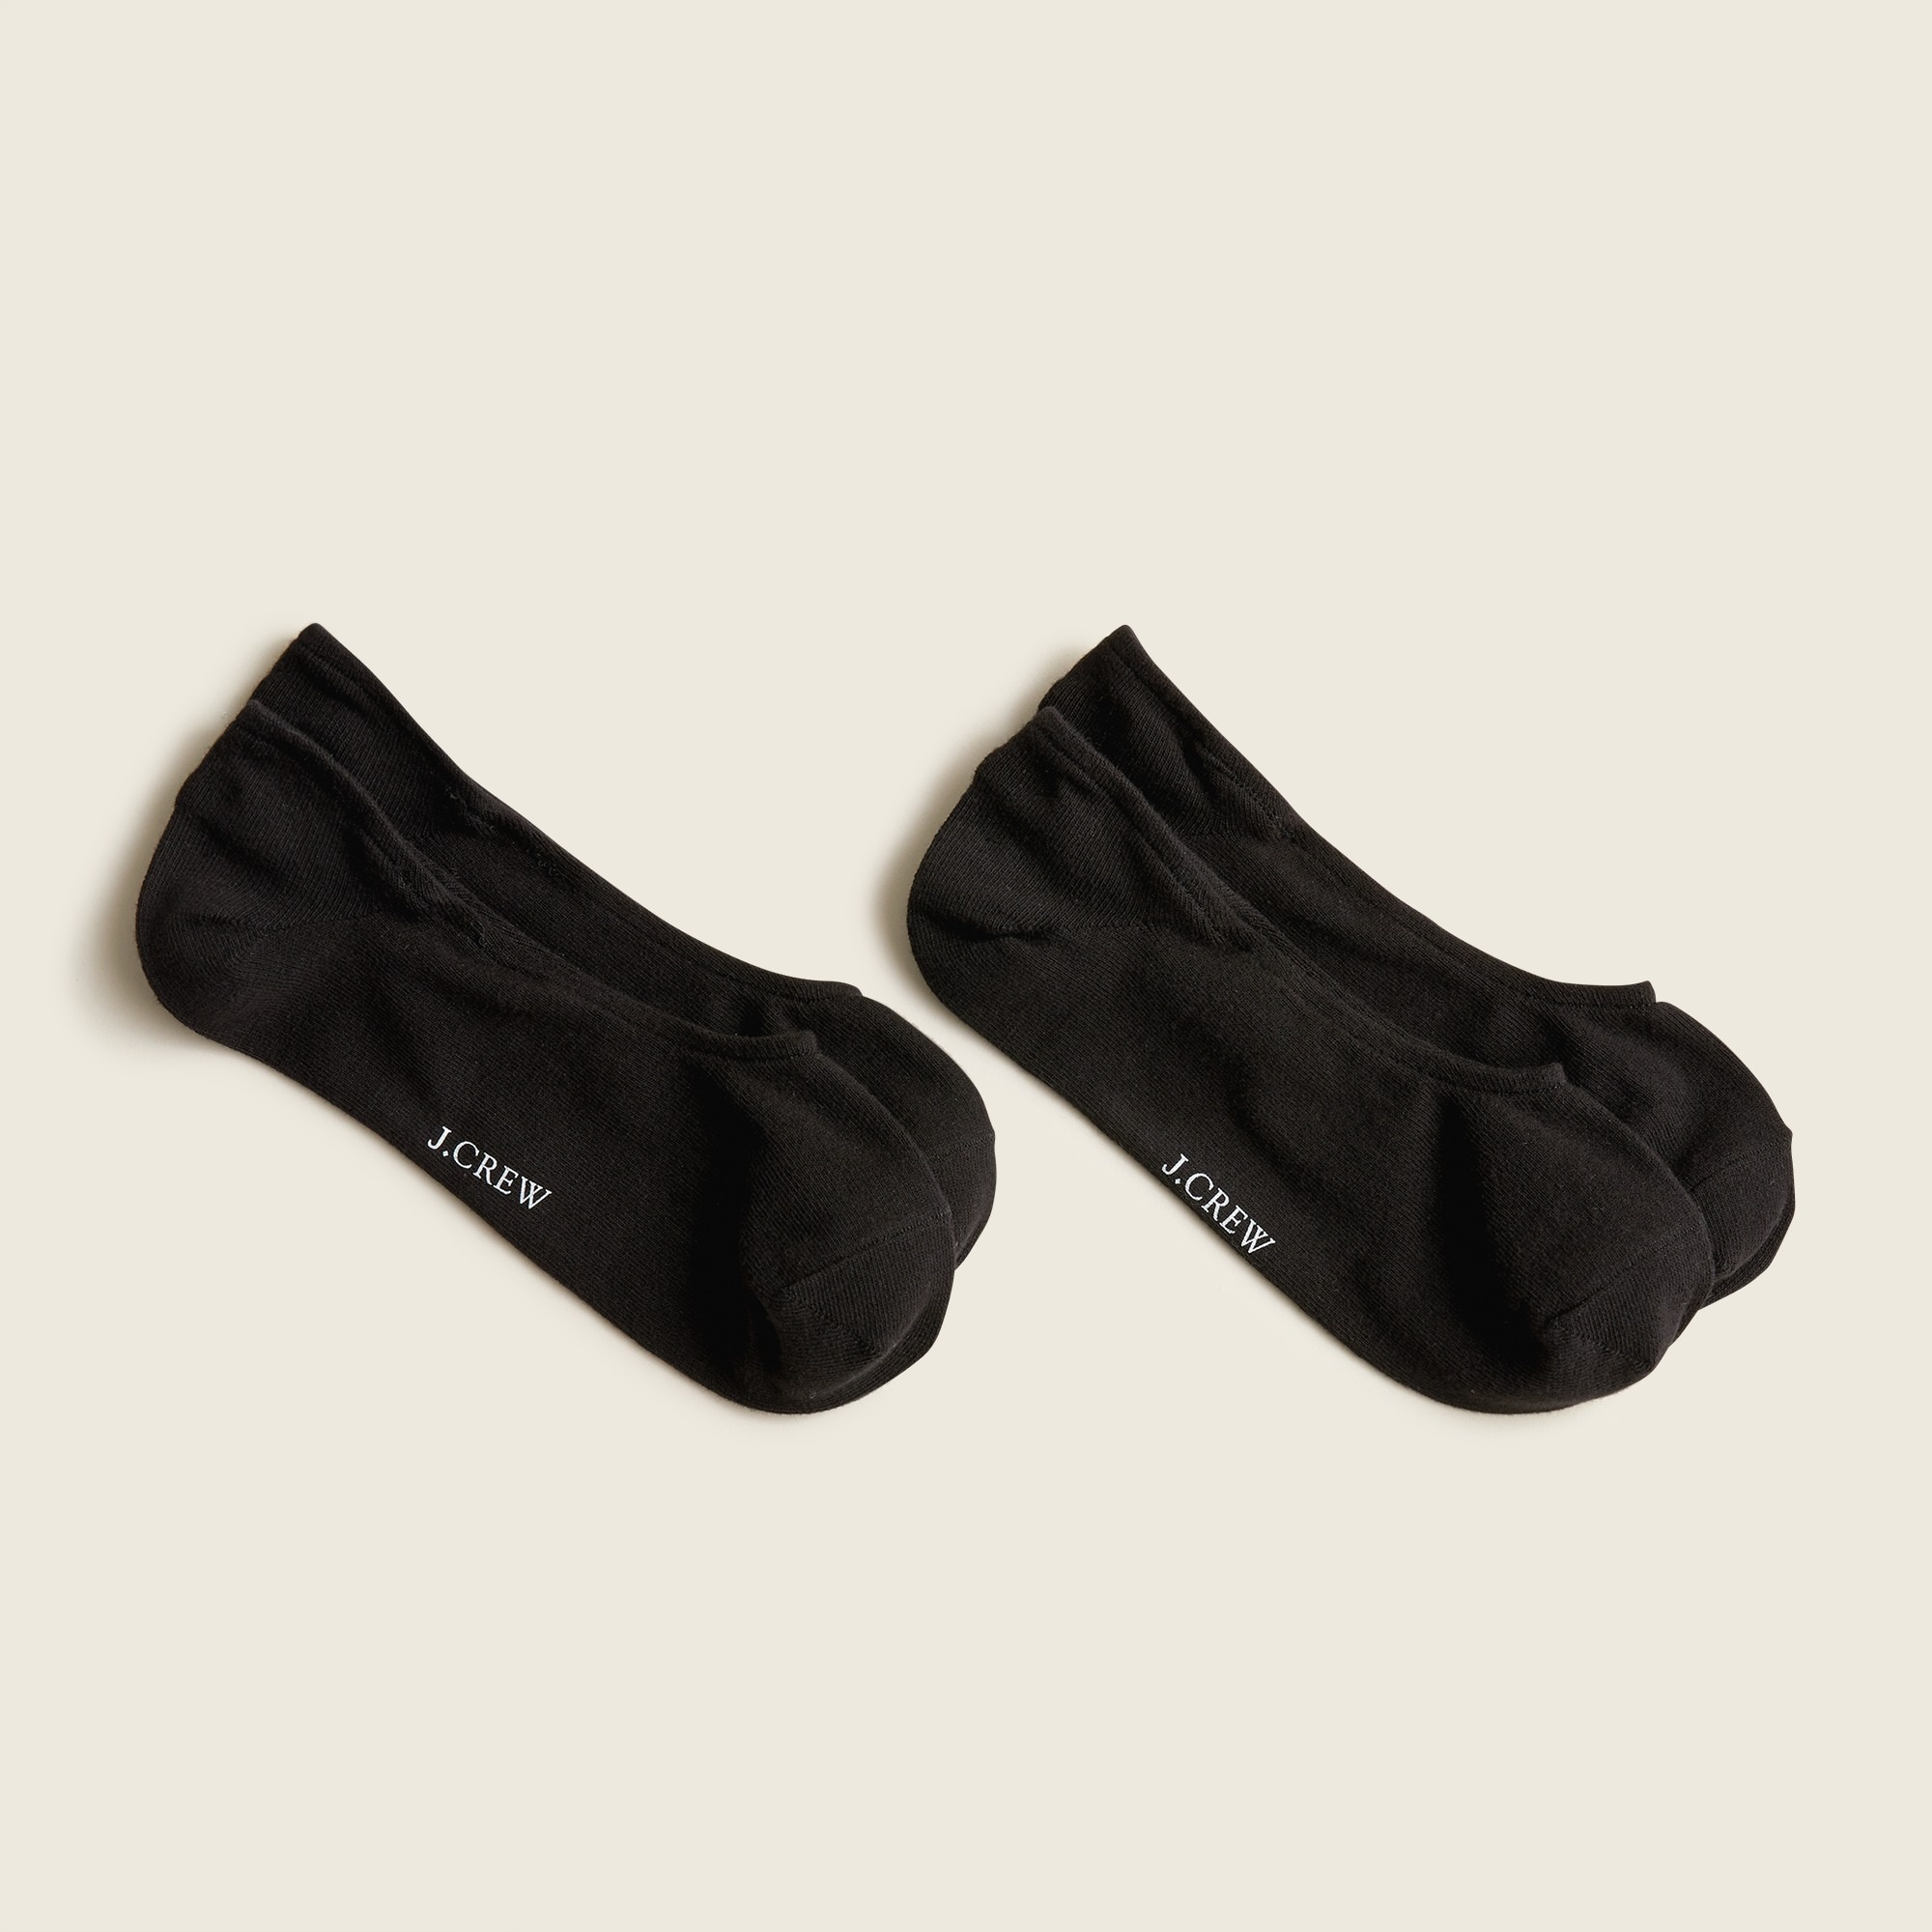 No-show socks two-pack men socks c